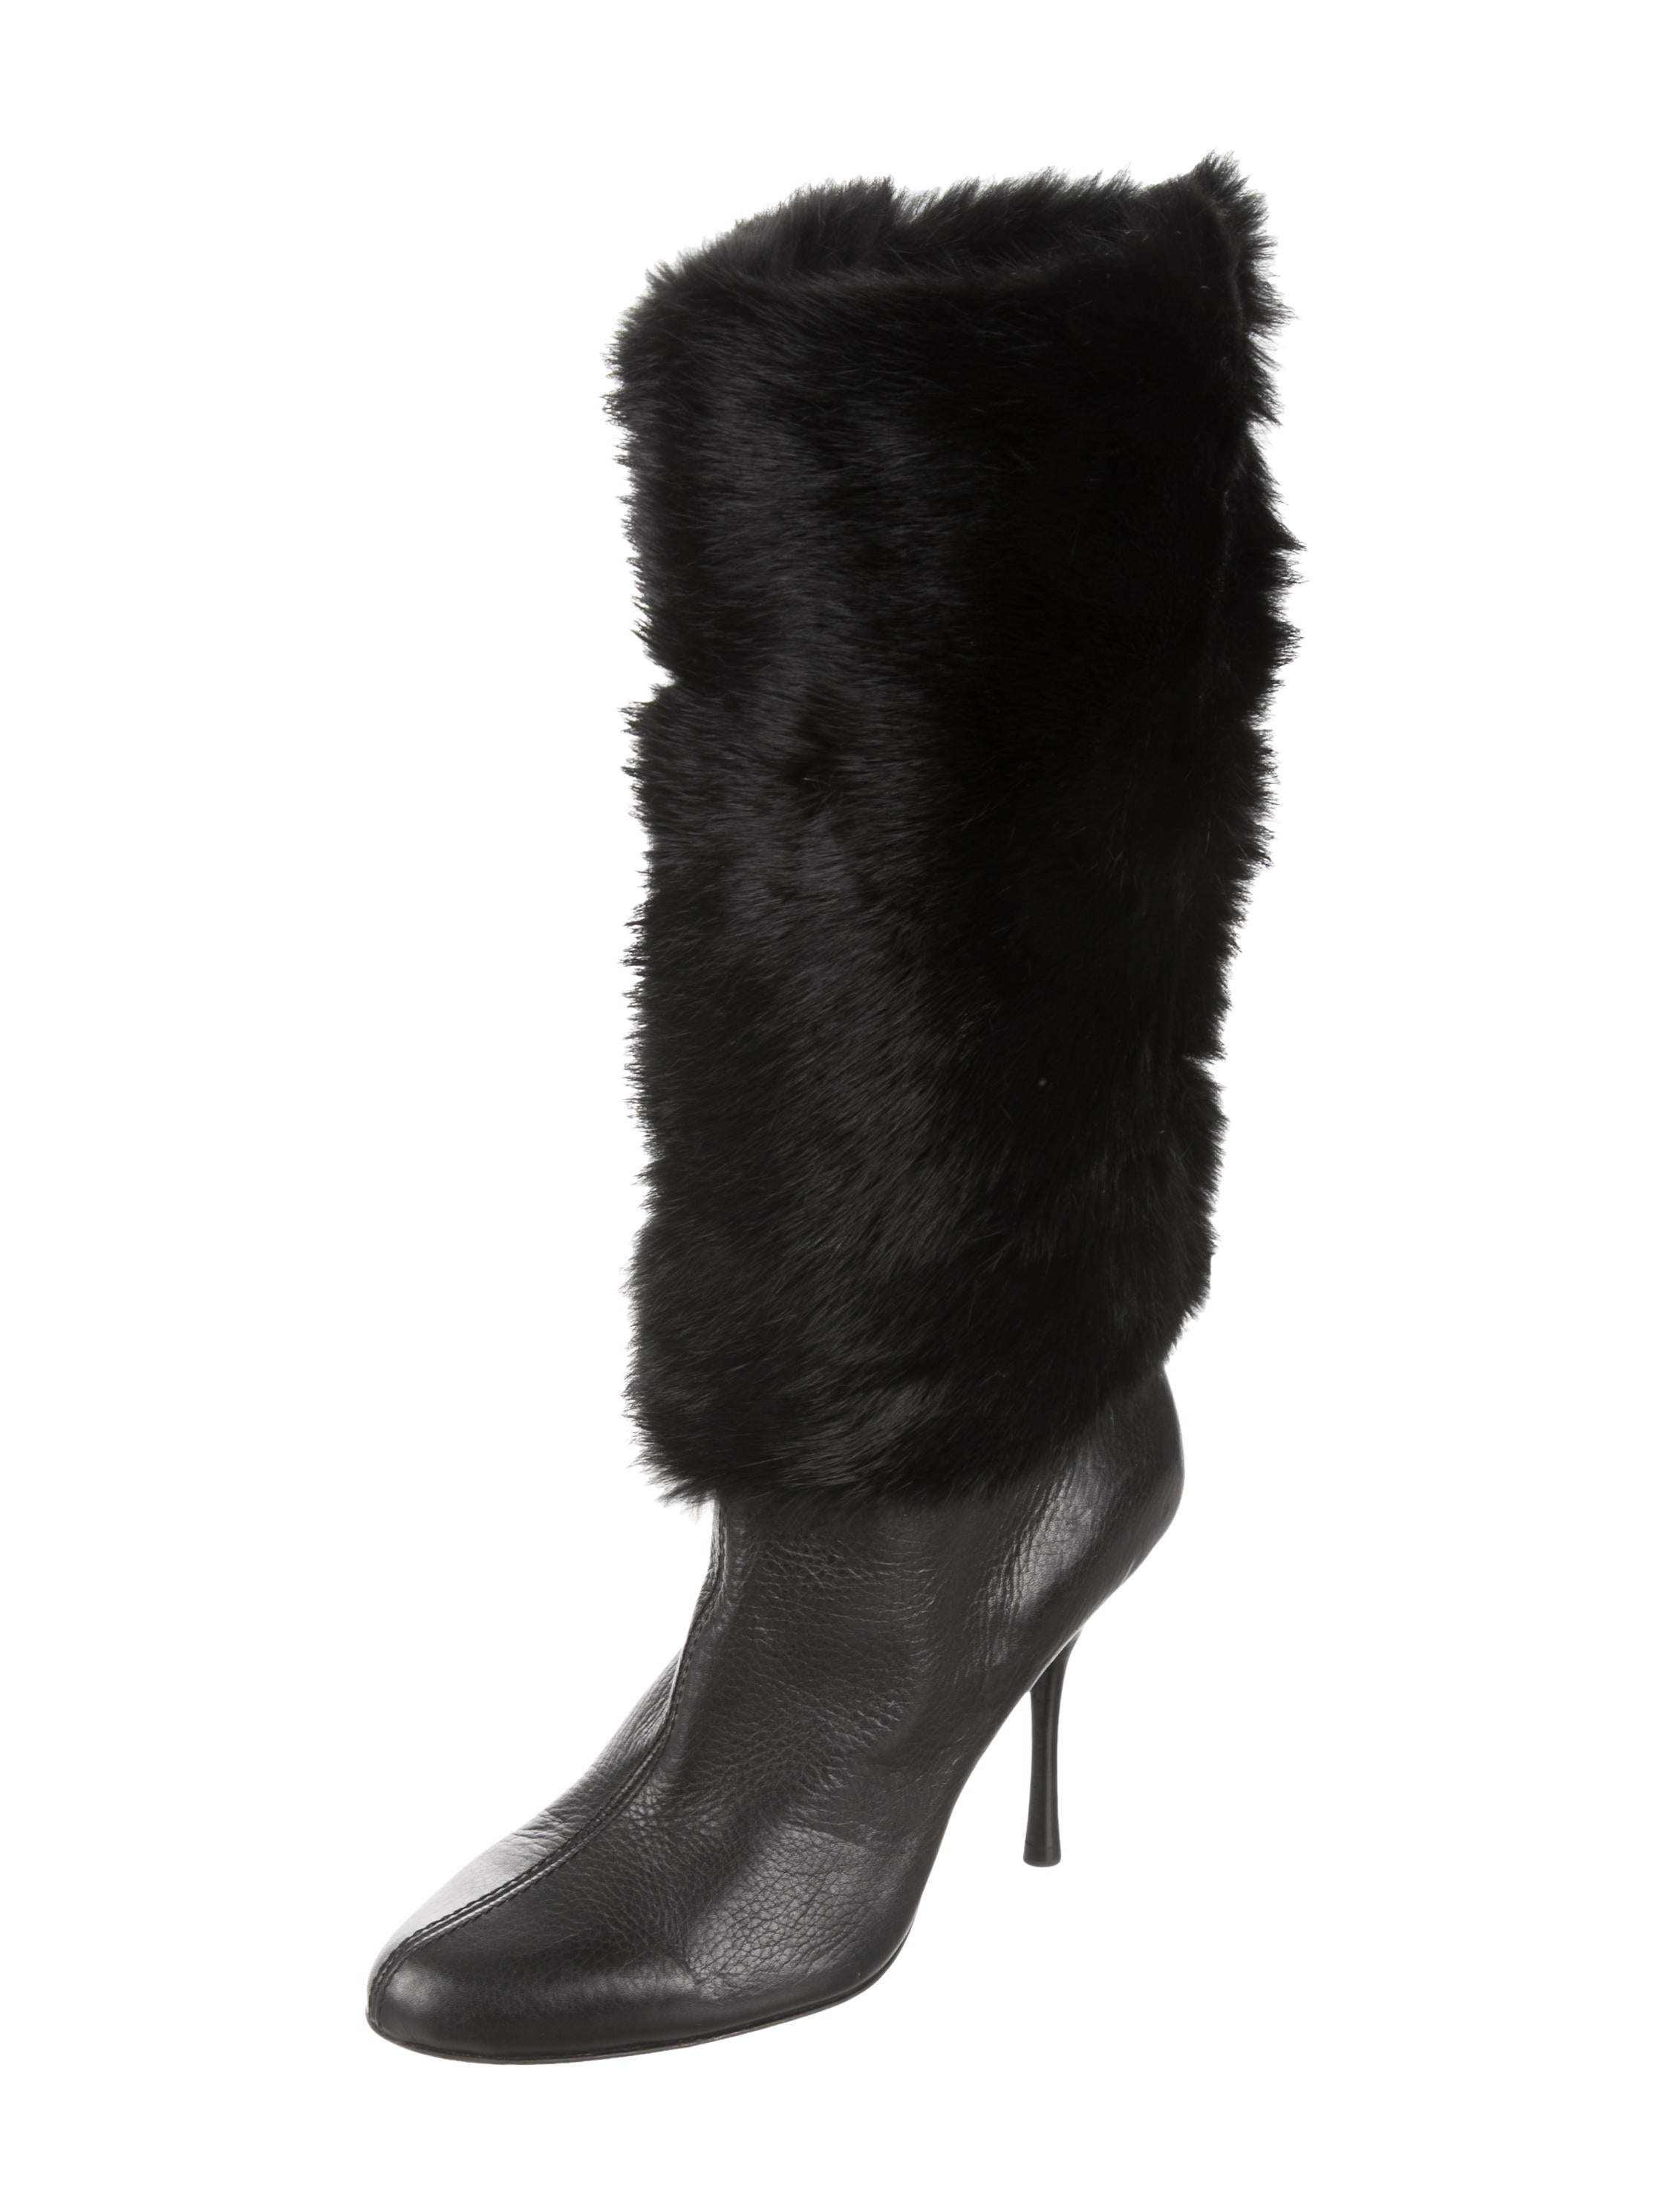 7dee64e8bc5 Gucci Fur-Trimmed Leather Boots - Shoes - GUC132681